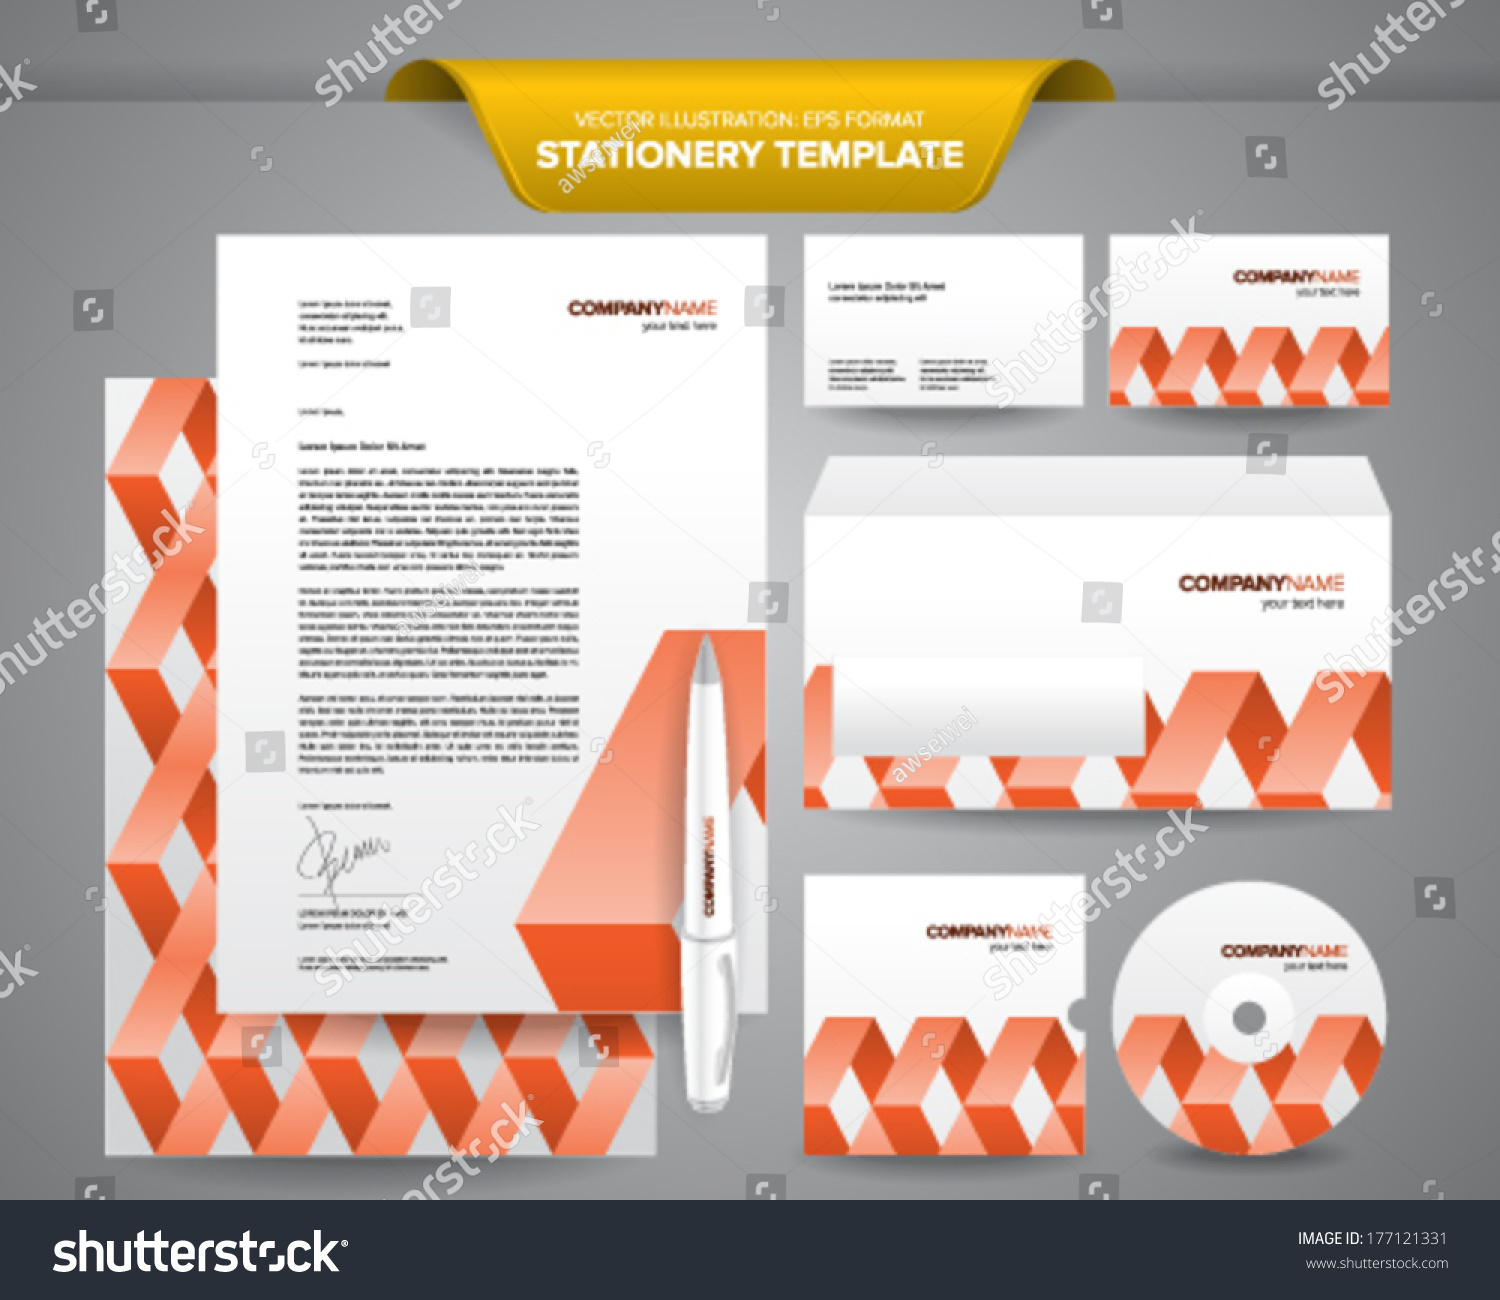 Complete set business stationery templates such stock vector complete set of business stationery templates such as letterhead envelope business card etc accmission Images